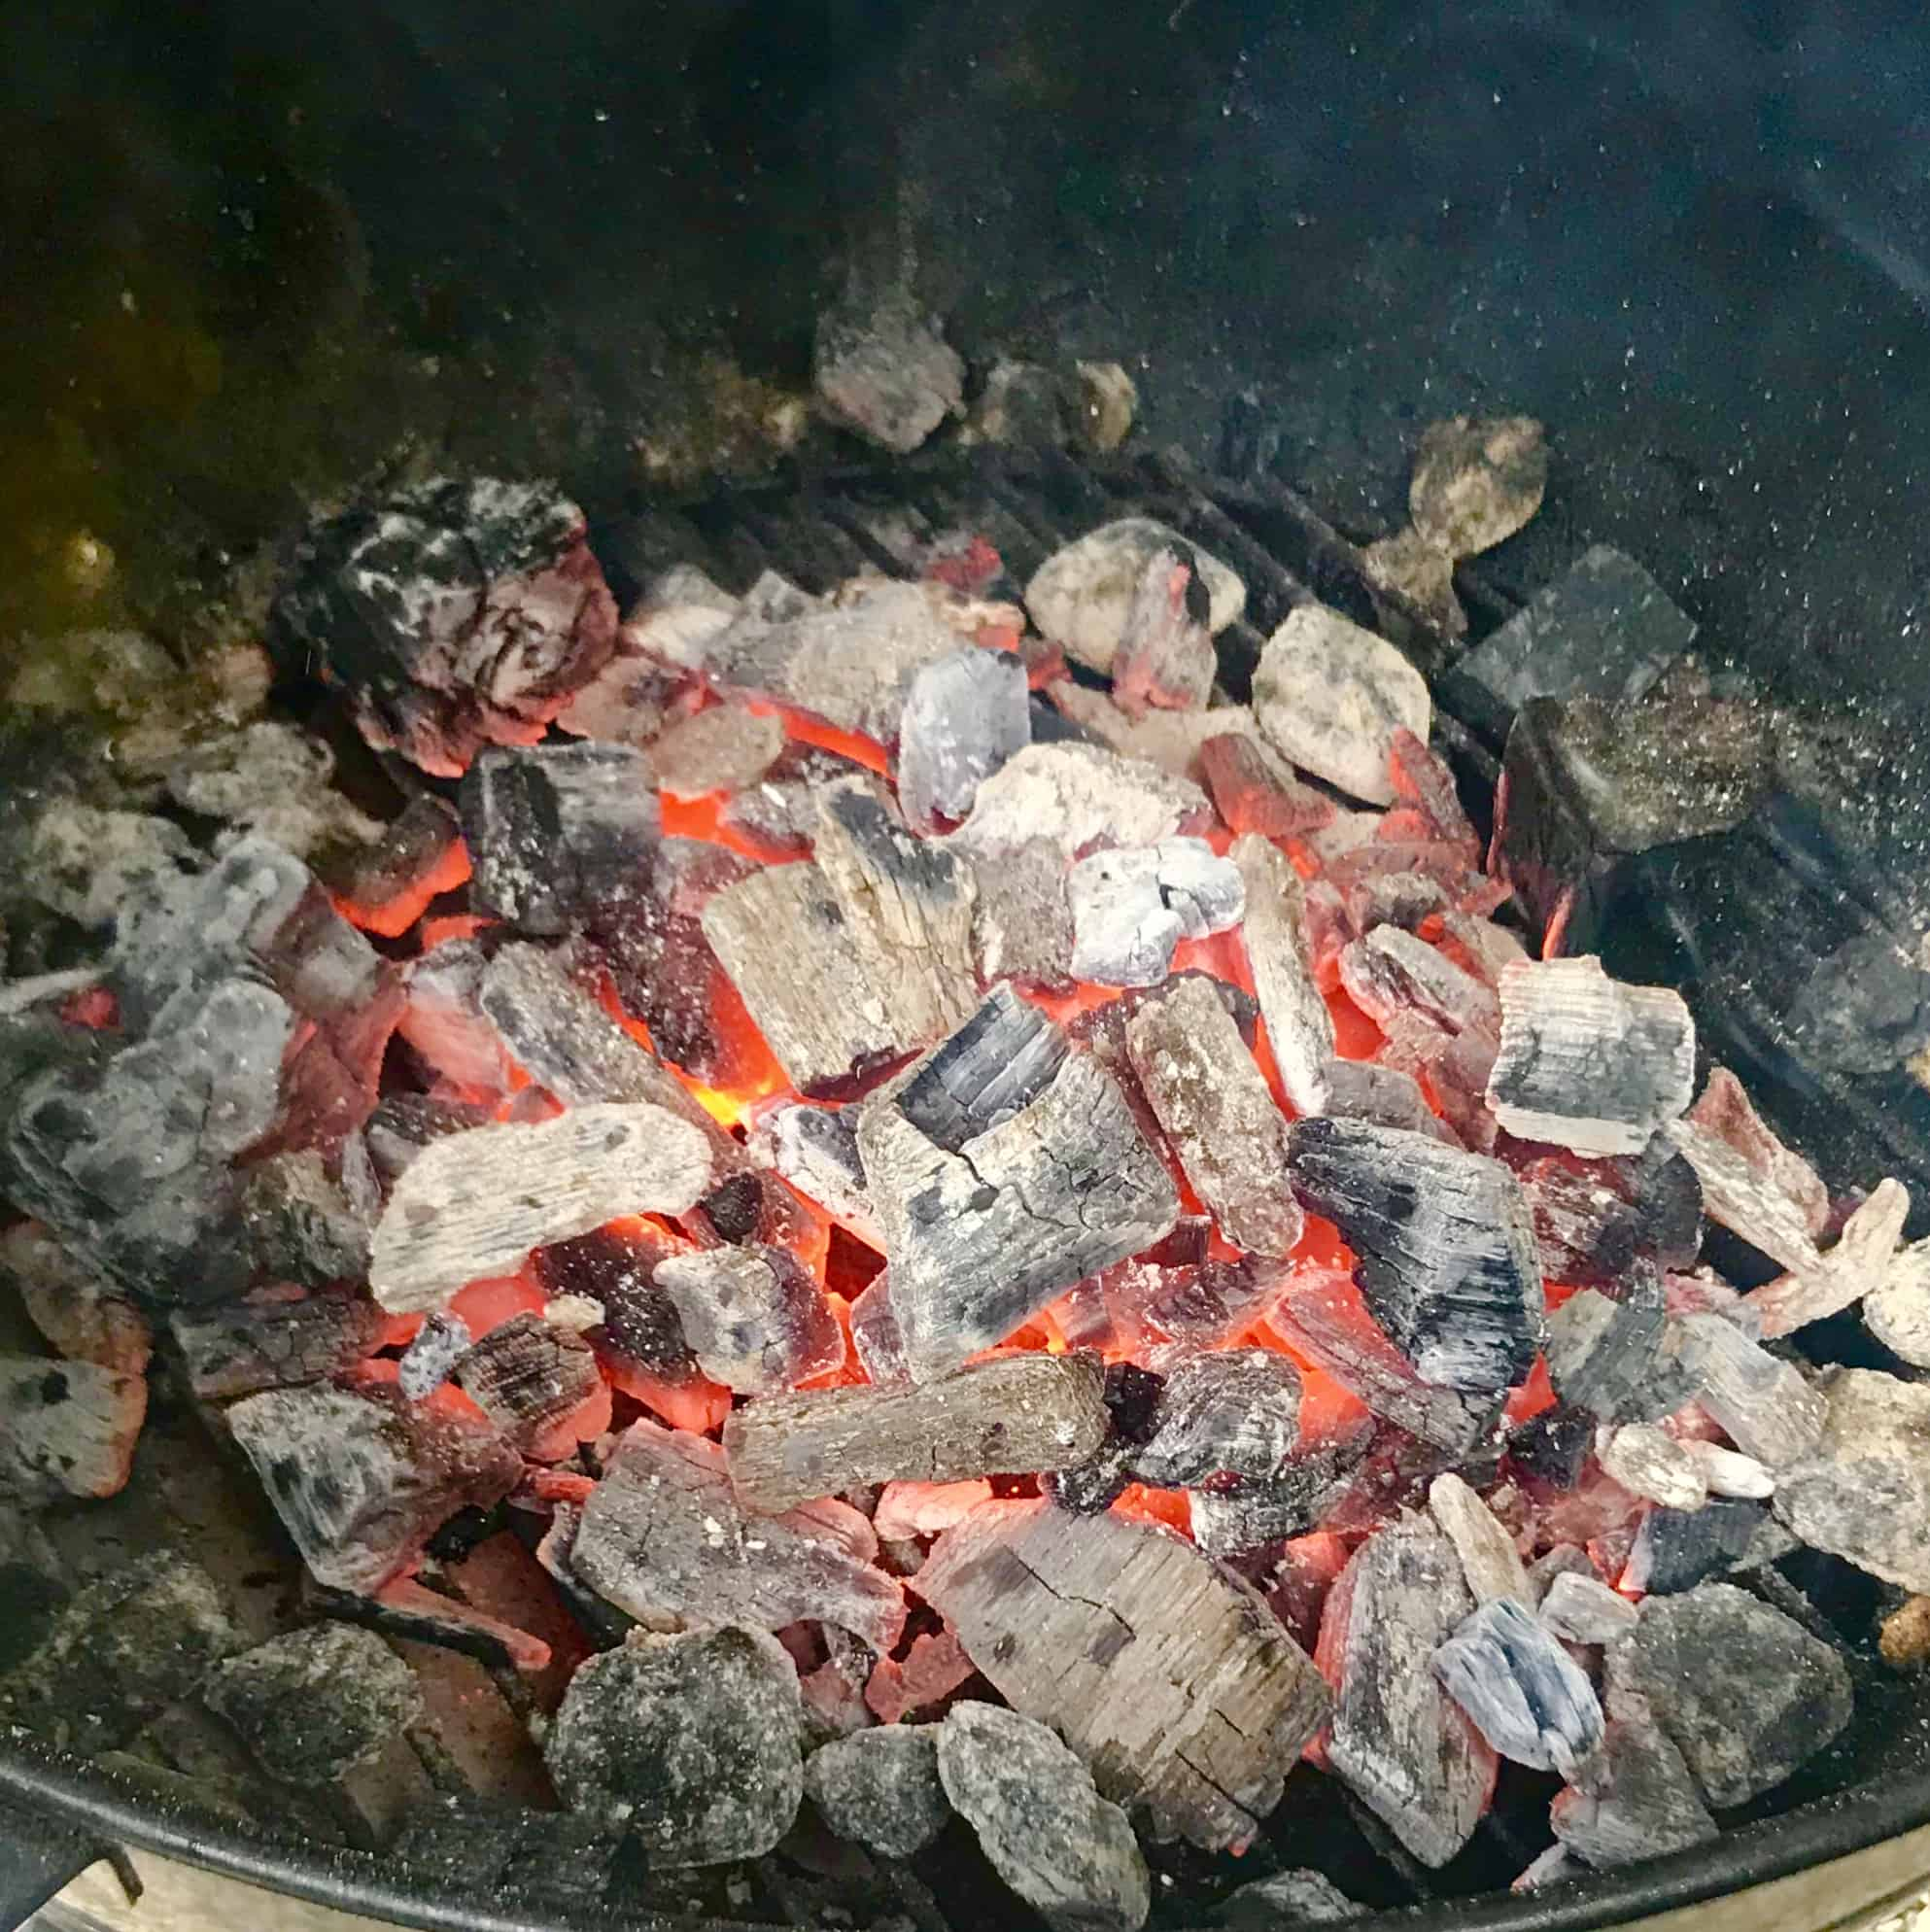 Hot coals on grill close up view